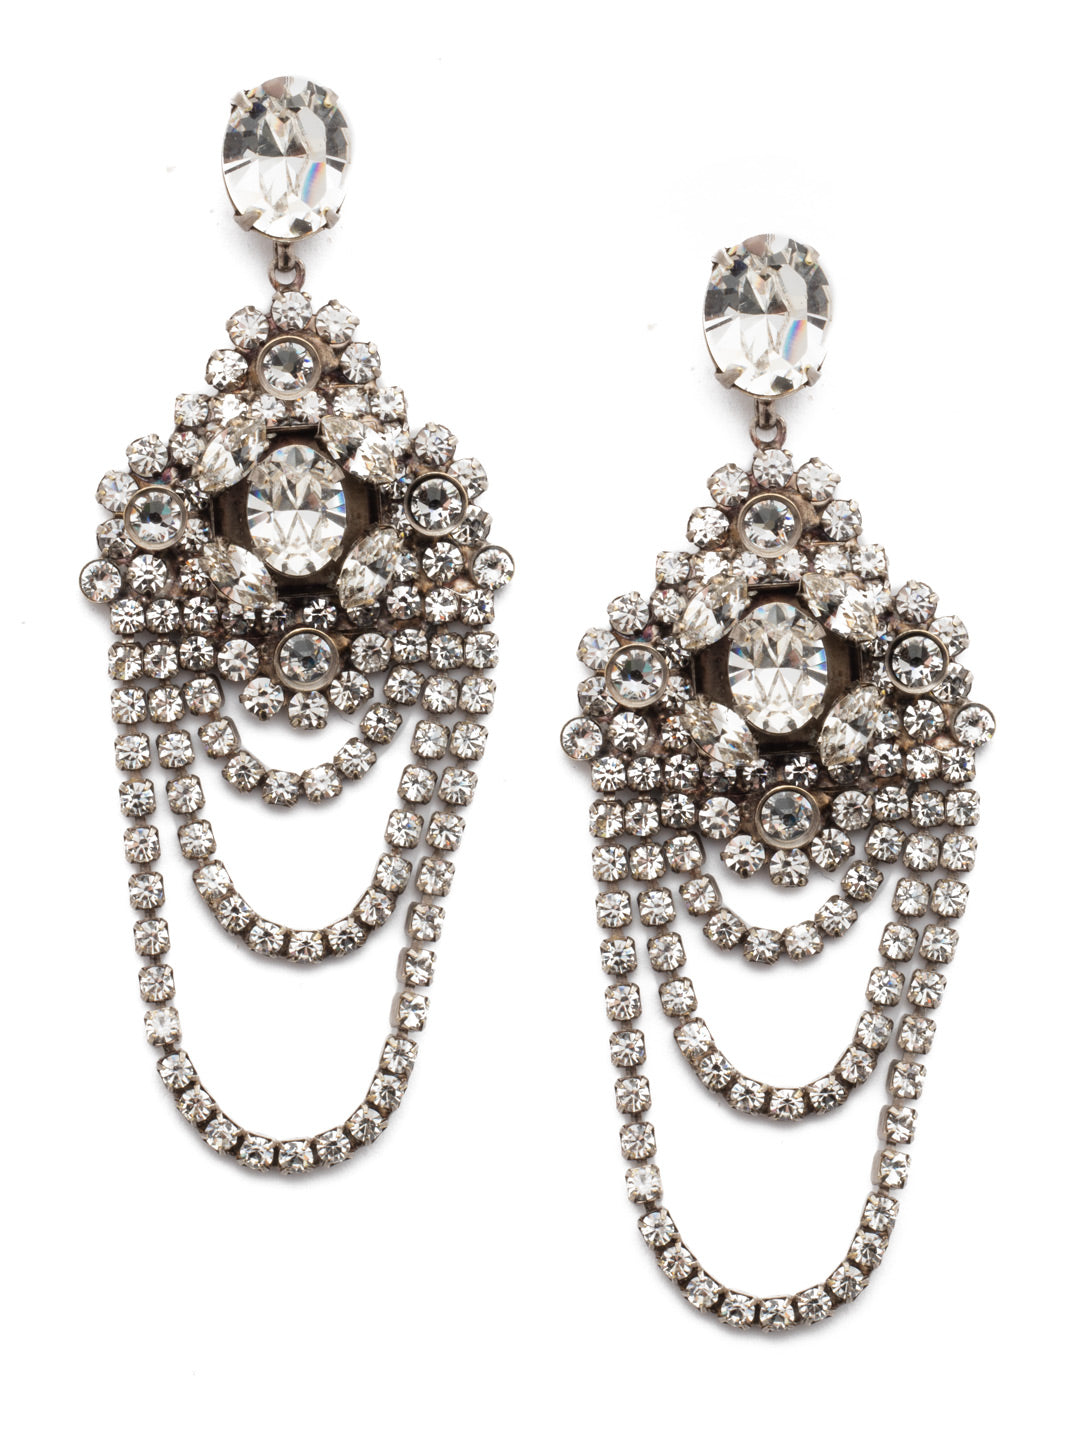 Crystal Chandelier Earrings Statement Earring - EBP49ASCRY